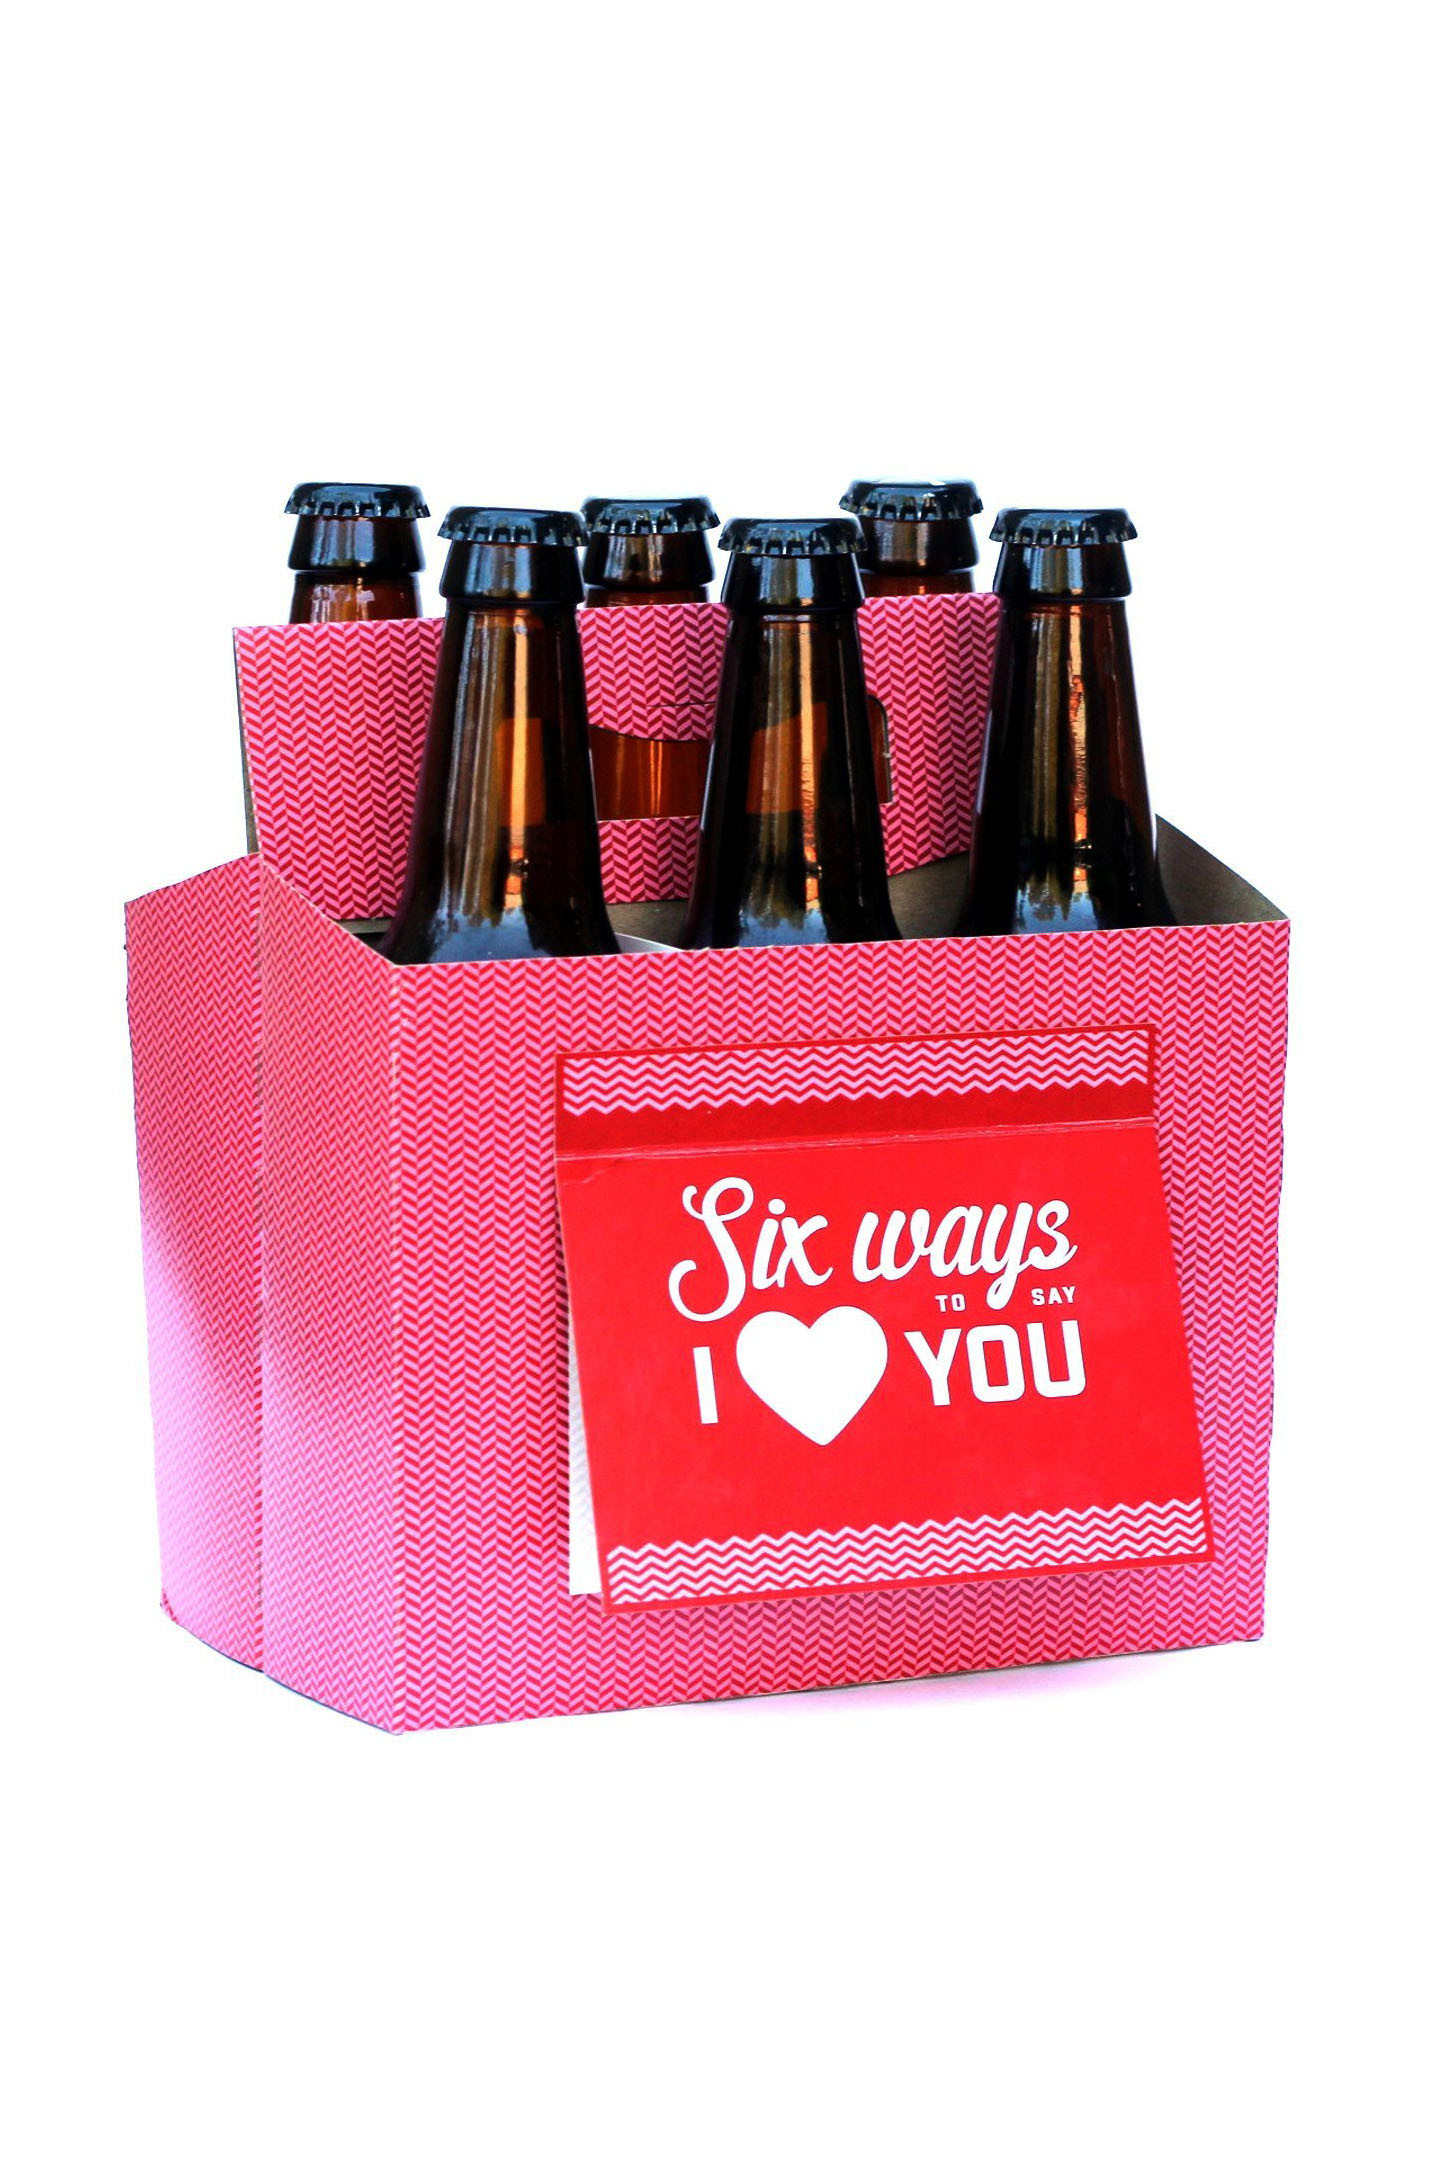 Best ideas about Gift Ideas For Men For Valentines Day . Save or Pin 30 Best Valentine s Day Gifts for Him 2017 Good Ideas Now.